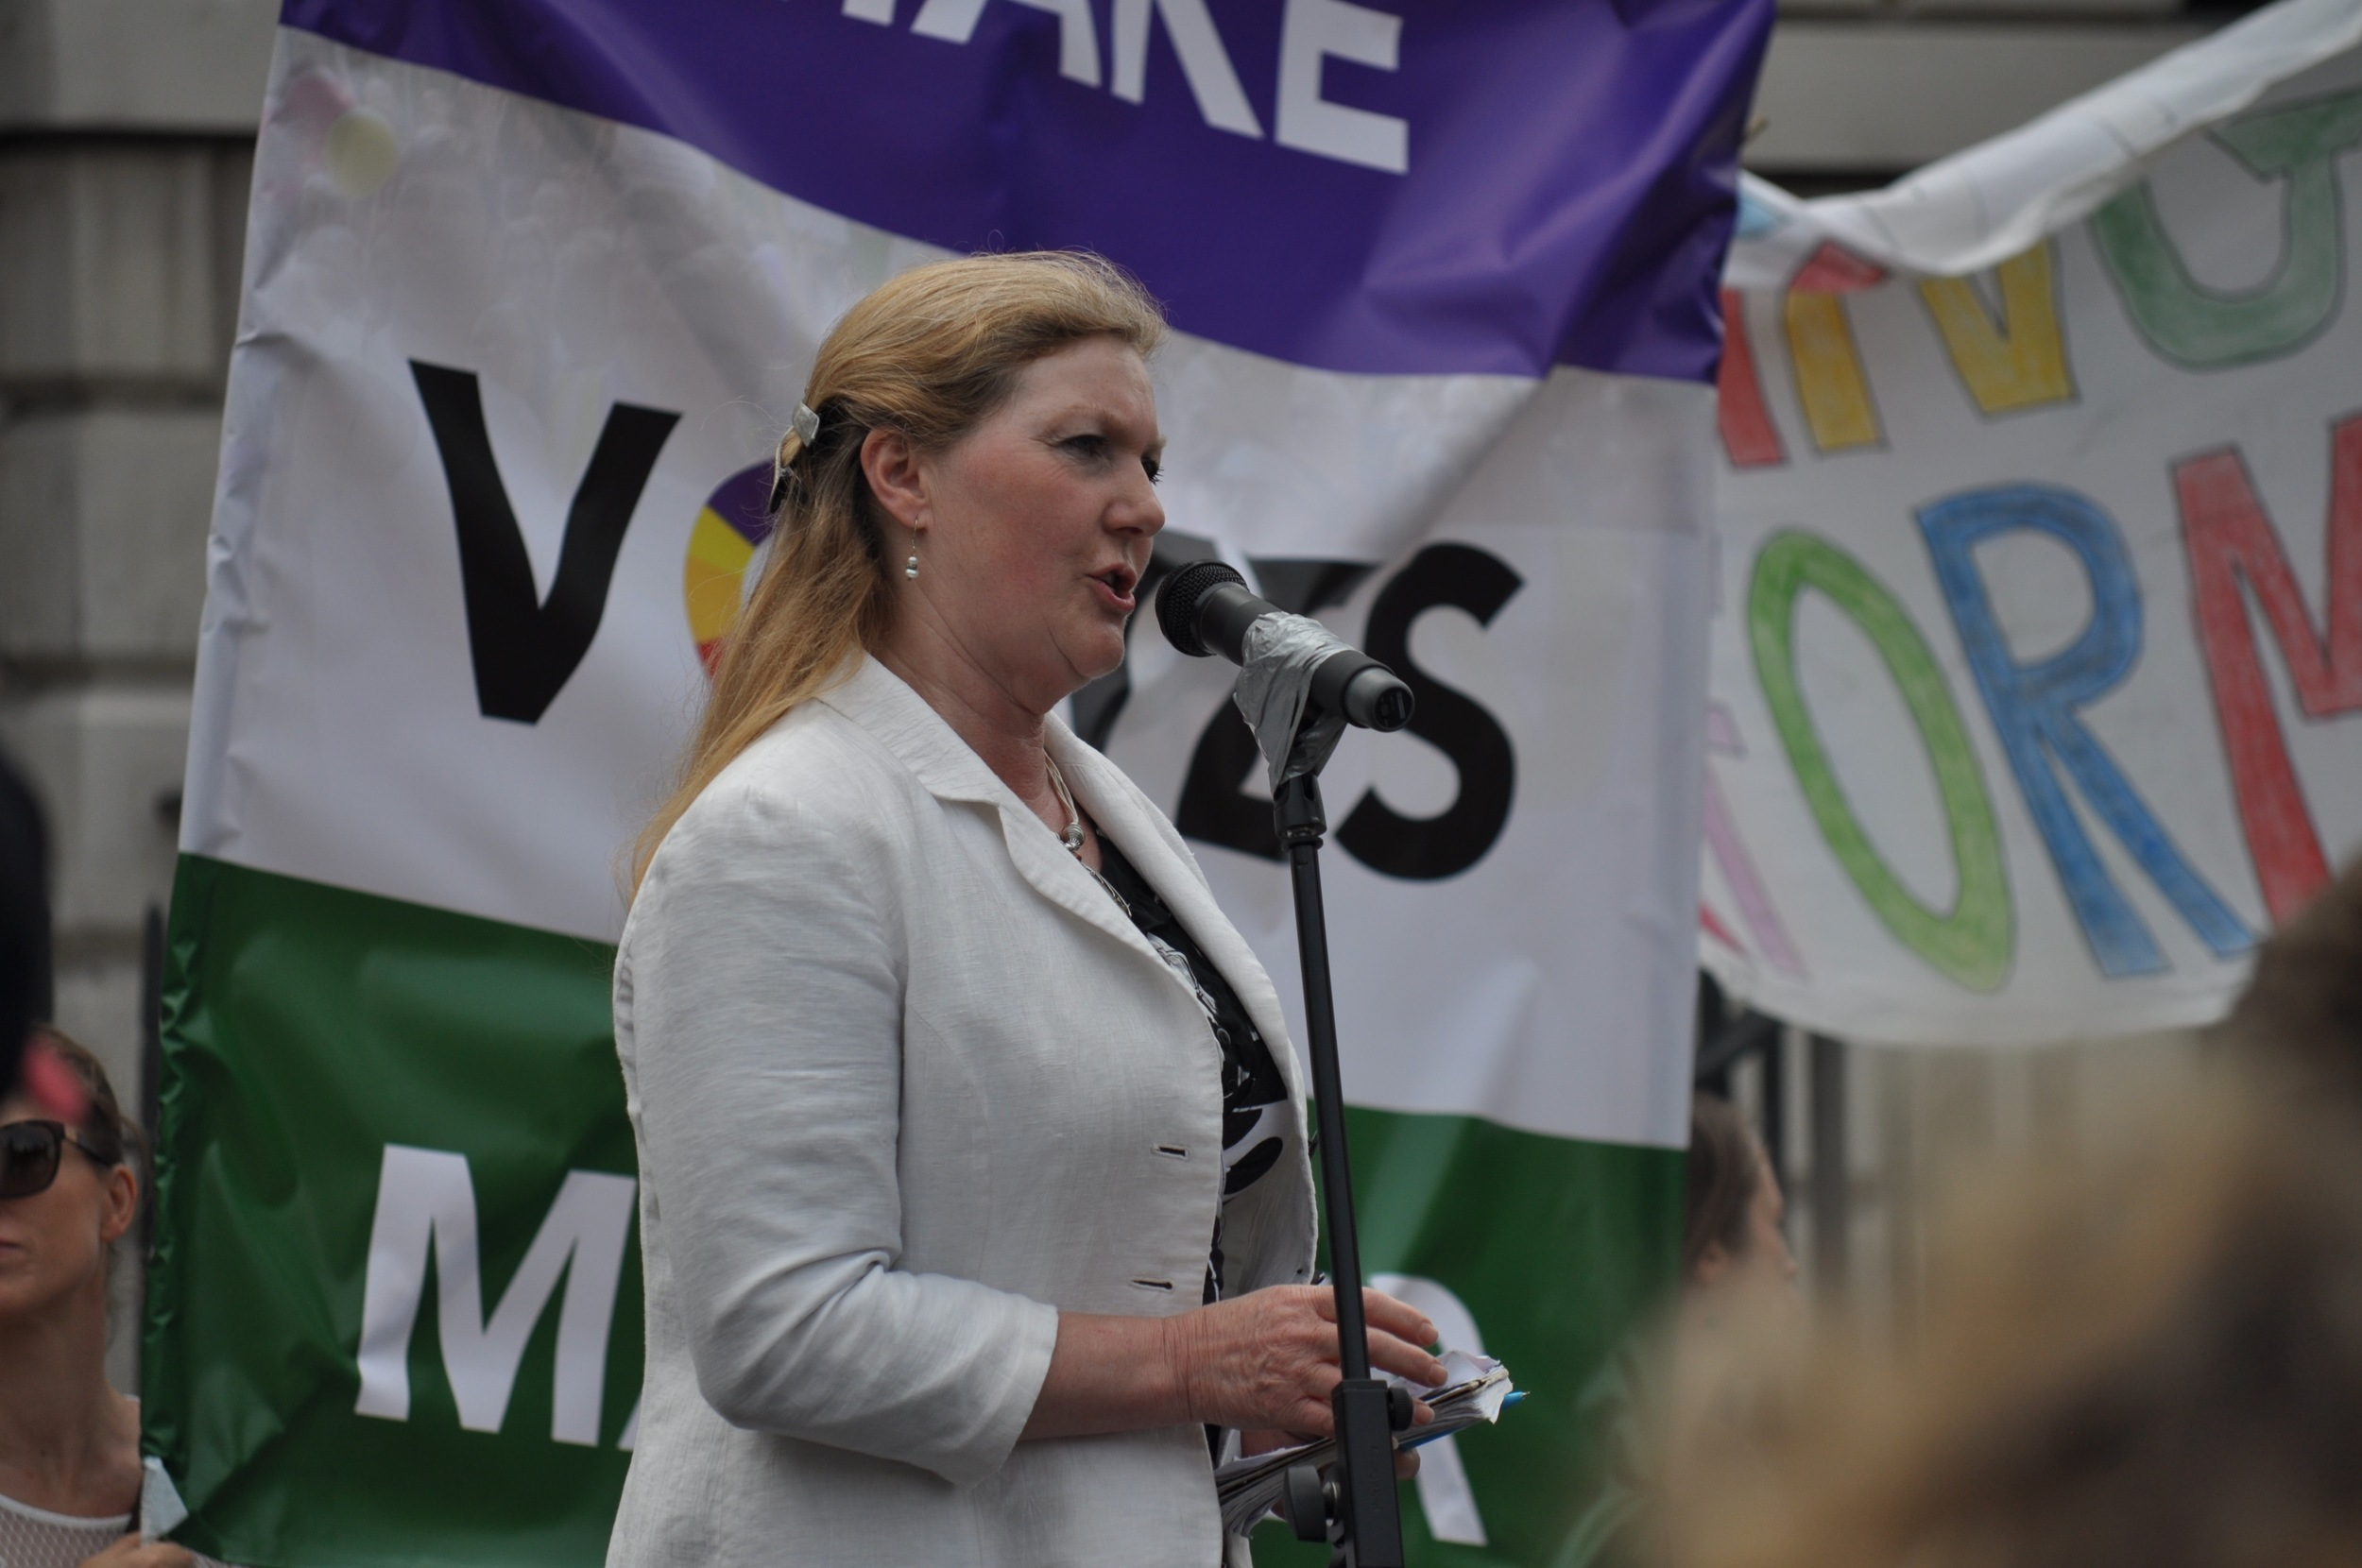 Cllr Marianne Overton, Leader, Independent Group of LGA